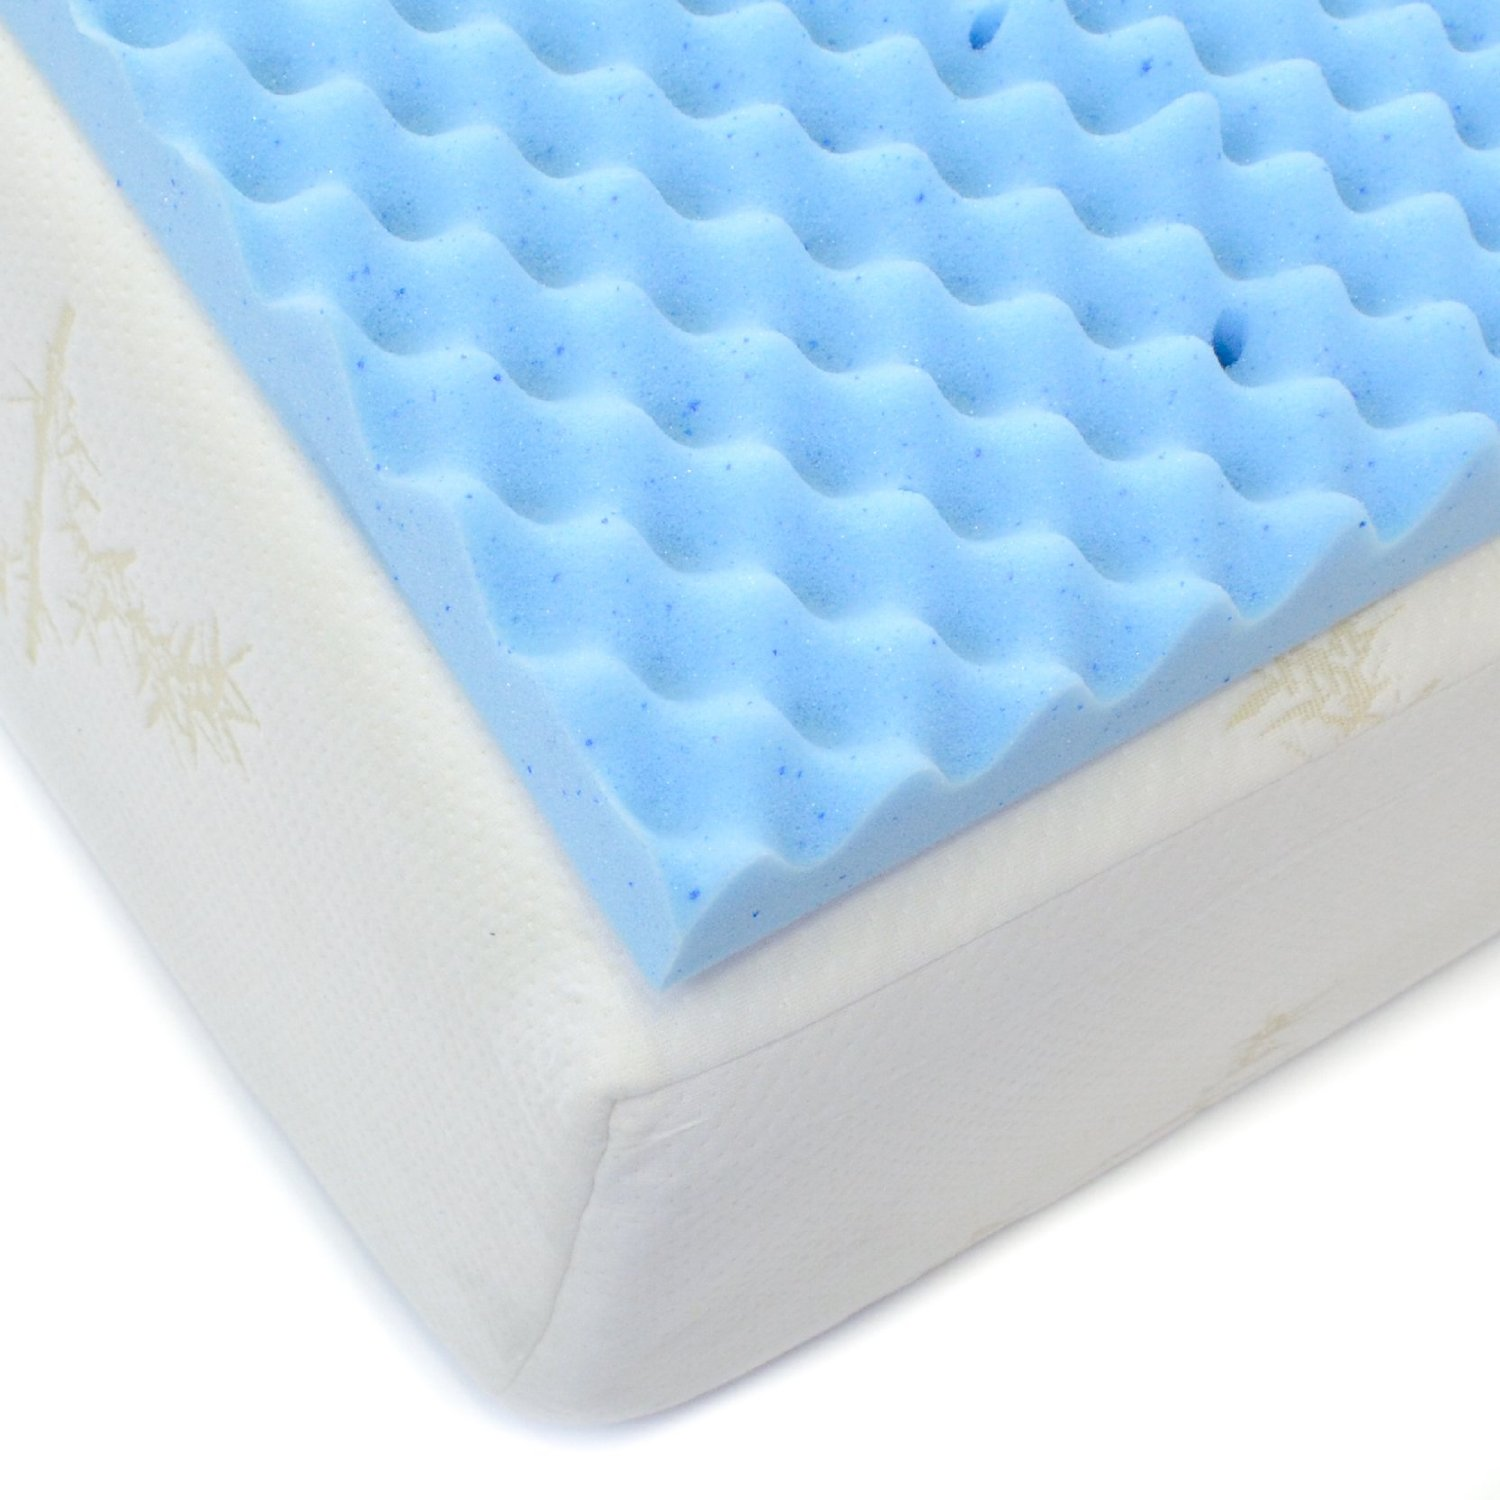 Picture of: Egg Crate Gel Infused Memory Foam Mattress Topper Queen Milliard Bedding The Ultimate Sleep Experience